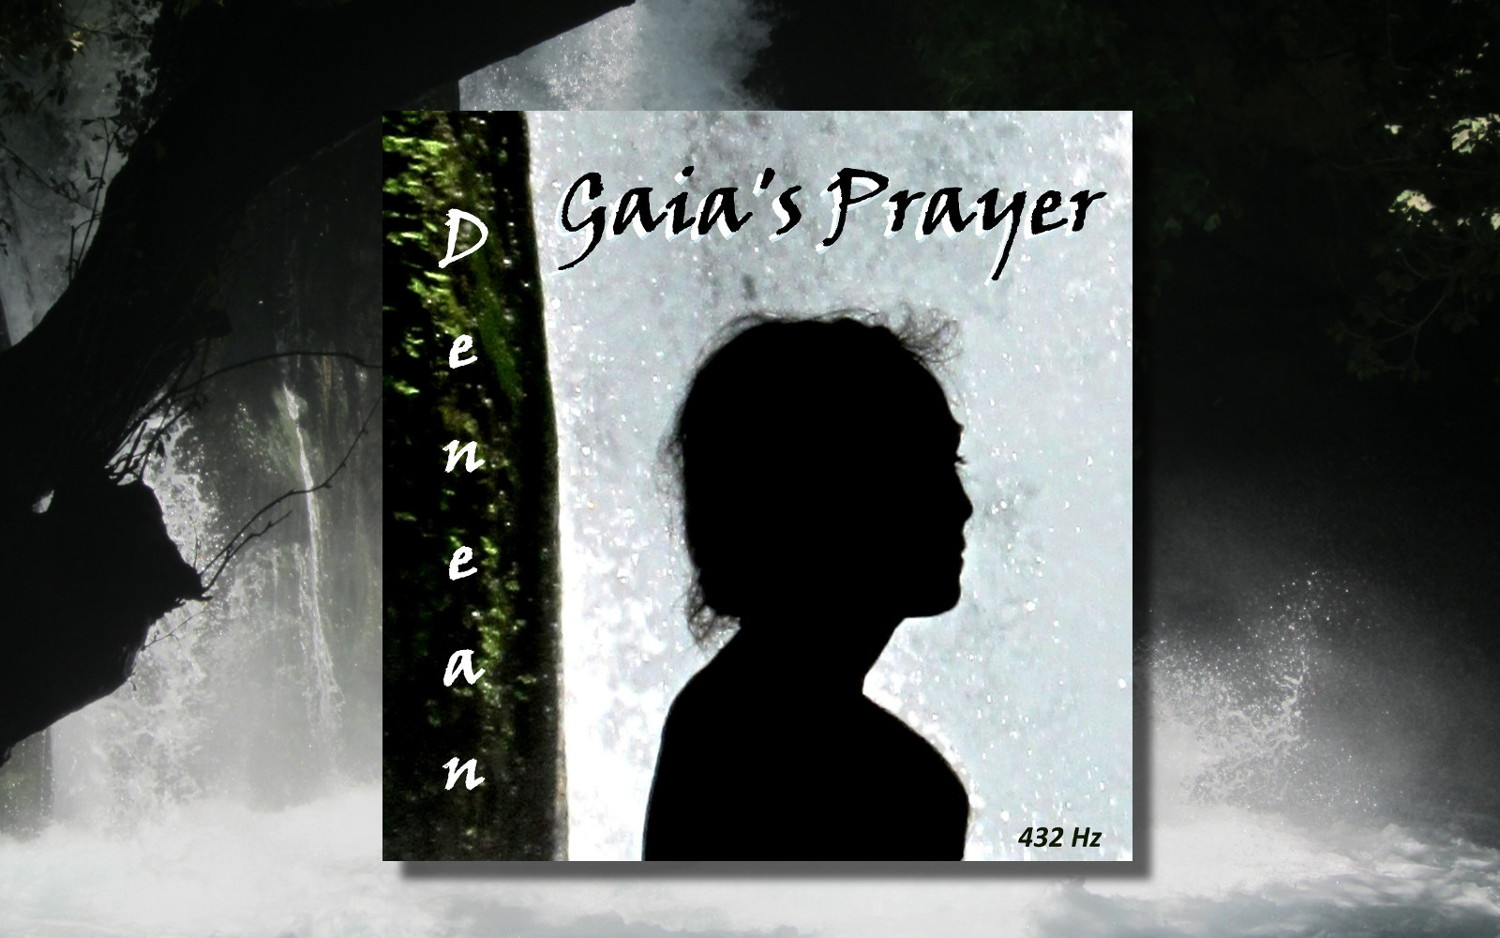 gaias-prayer-blog.jpg